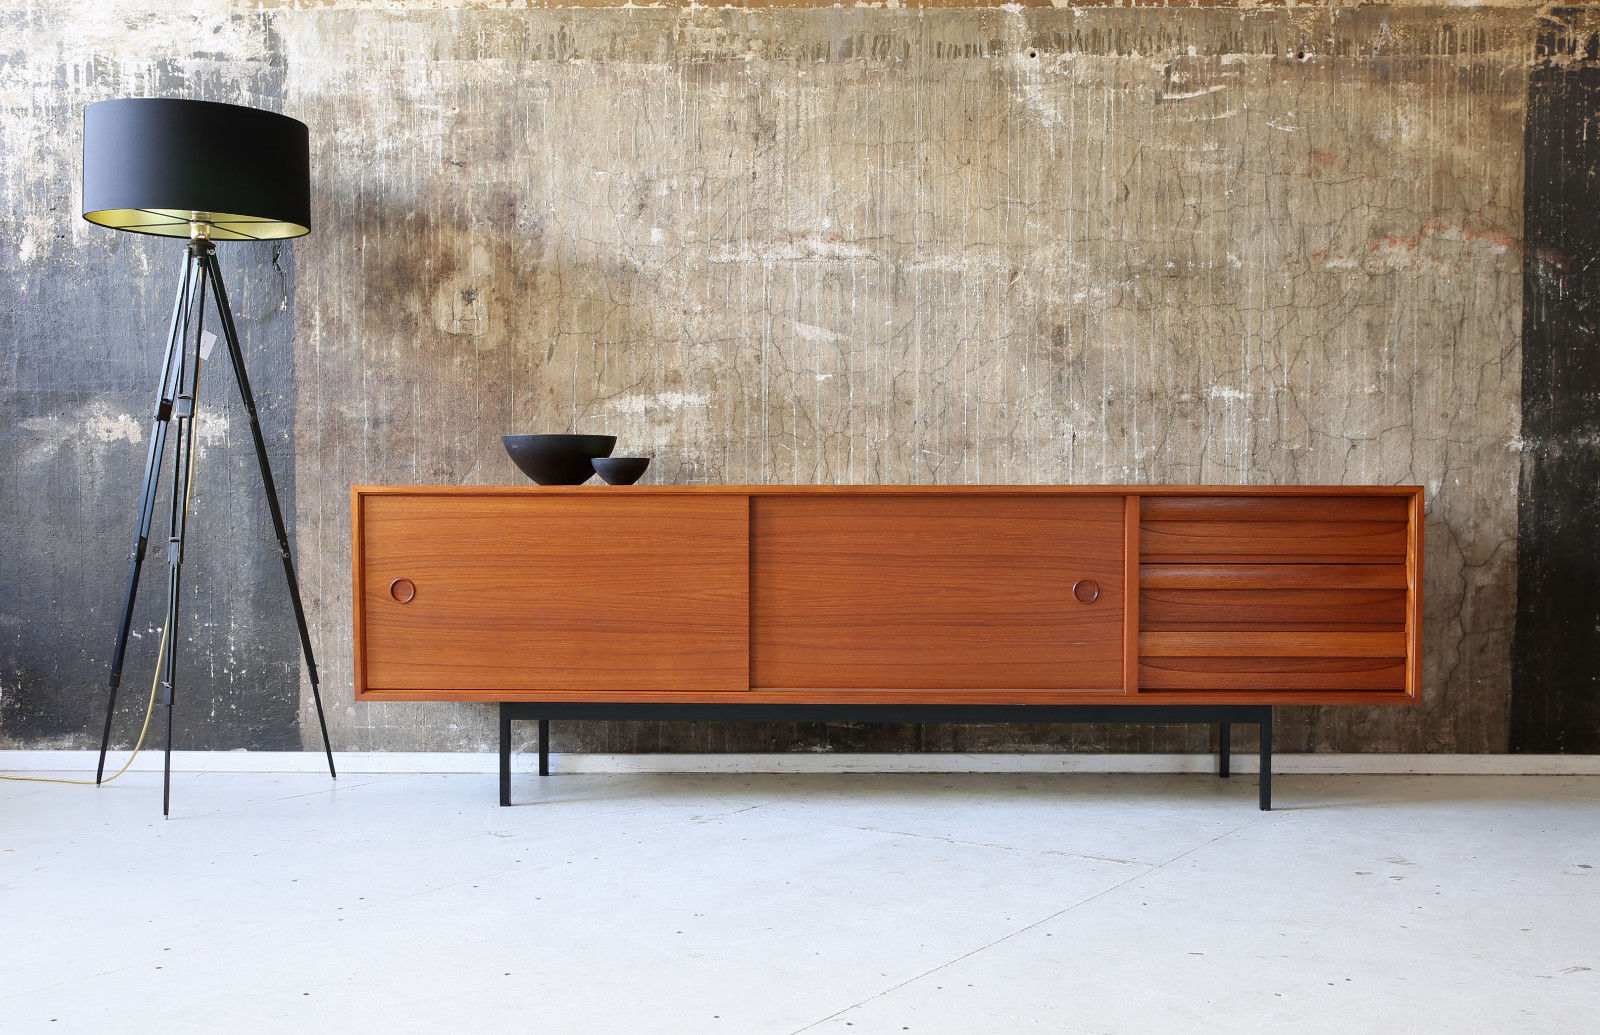 Teak Sessel Danish Sideboard Teak | Stilraumberlin | Dänische Design Möbel